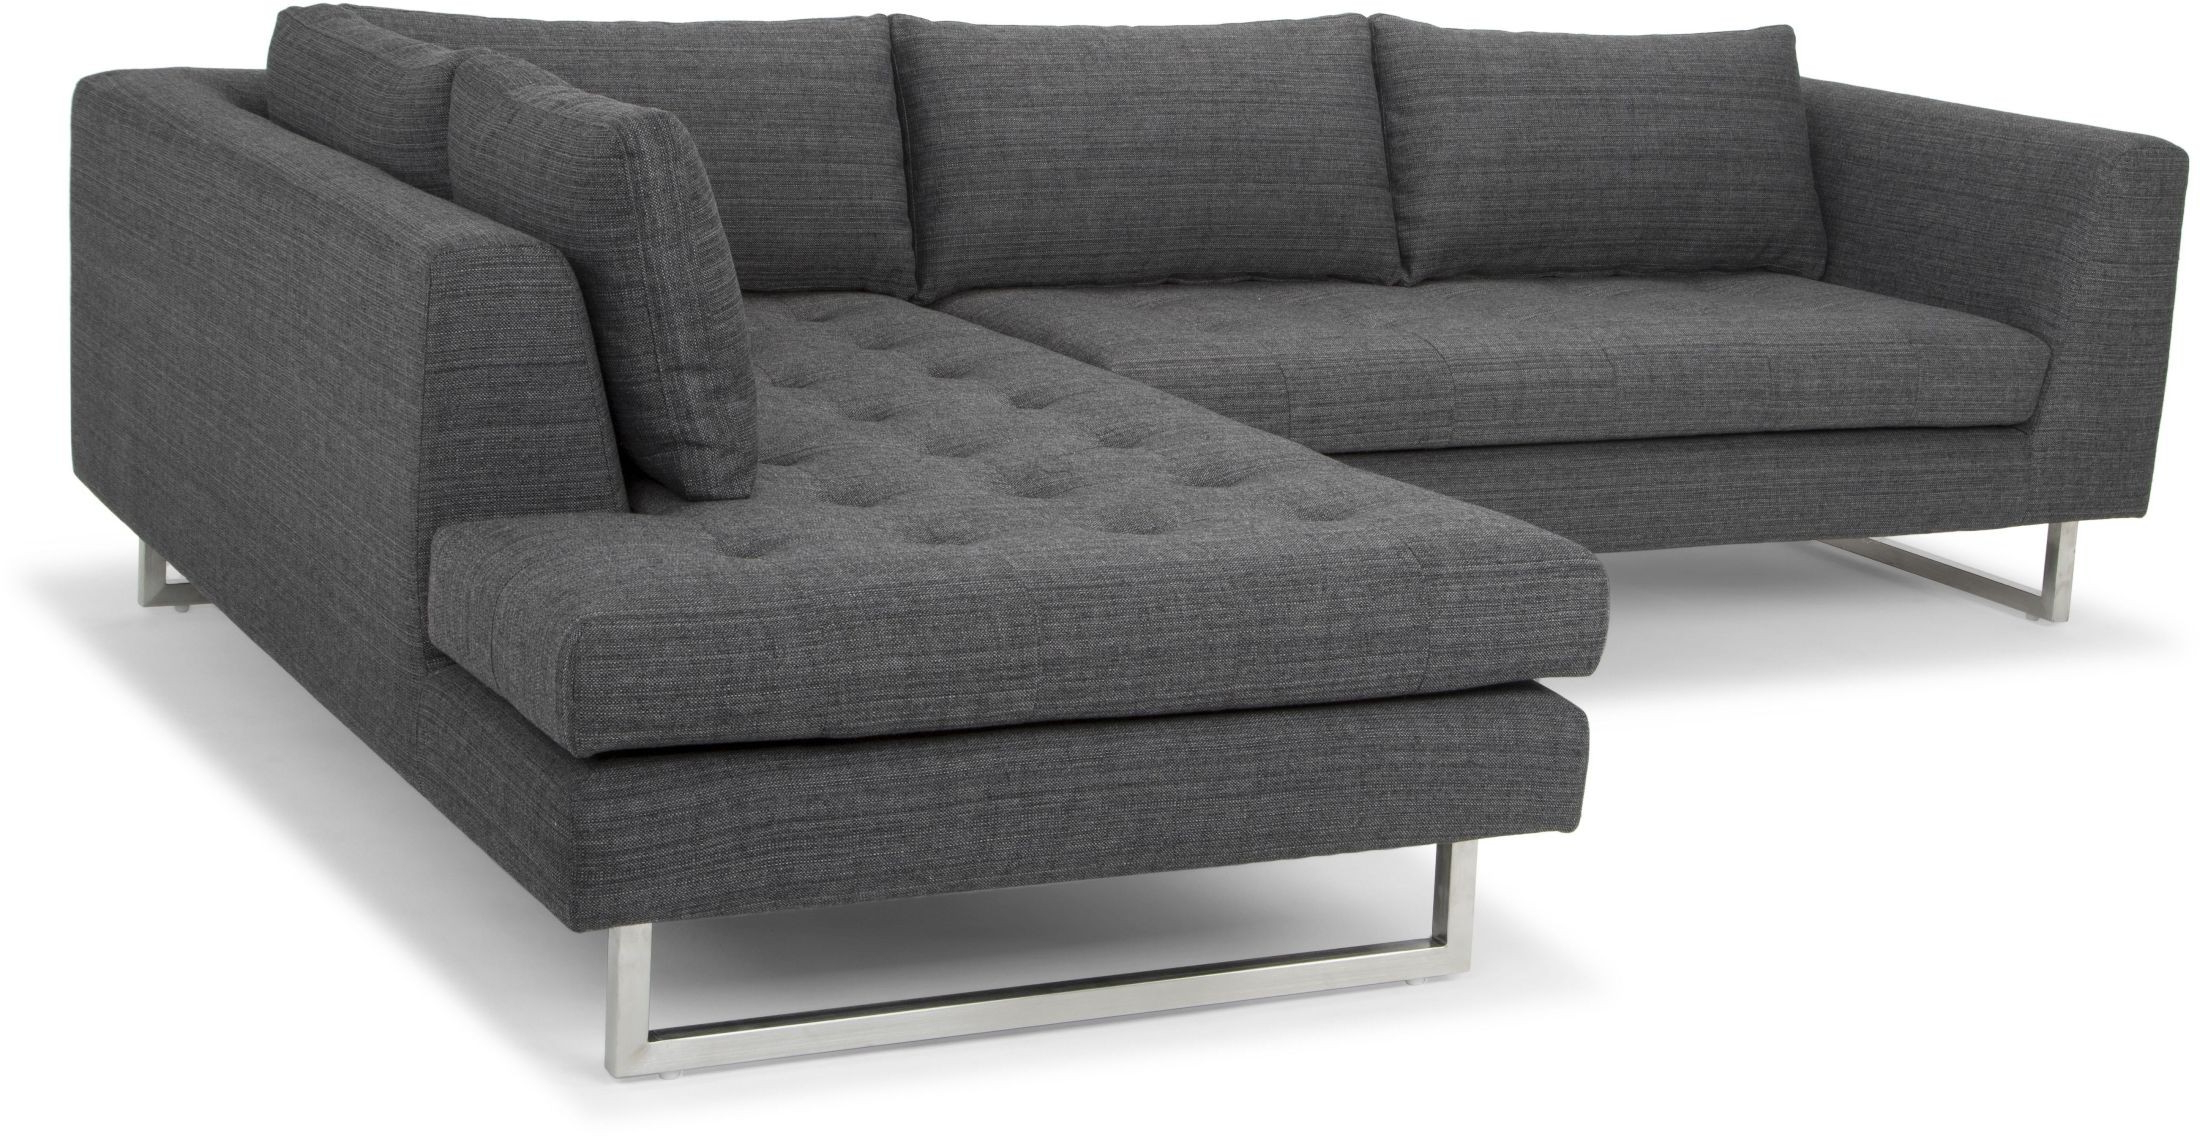 Janis Dark Grey Tweed Raf Sectional Sofa From Nuevo For Well Known Noa Sectional Sofas With Ottoman Gray (View 22 of 25)